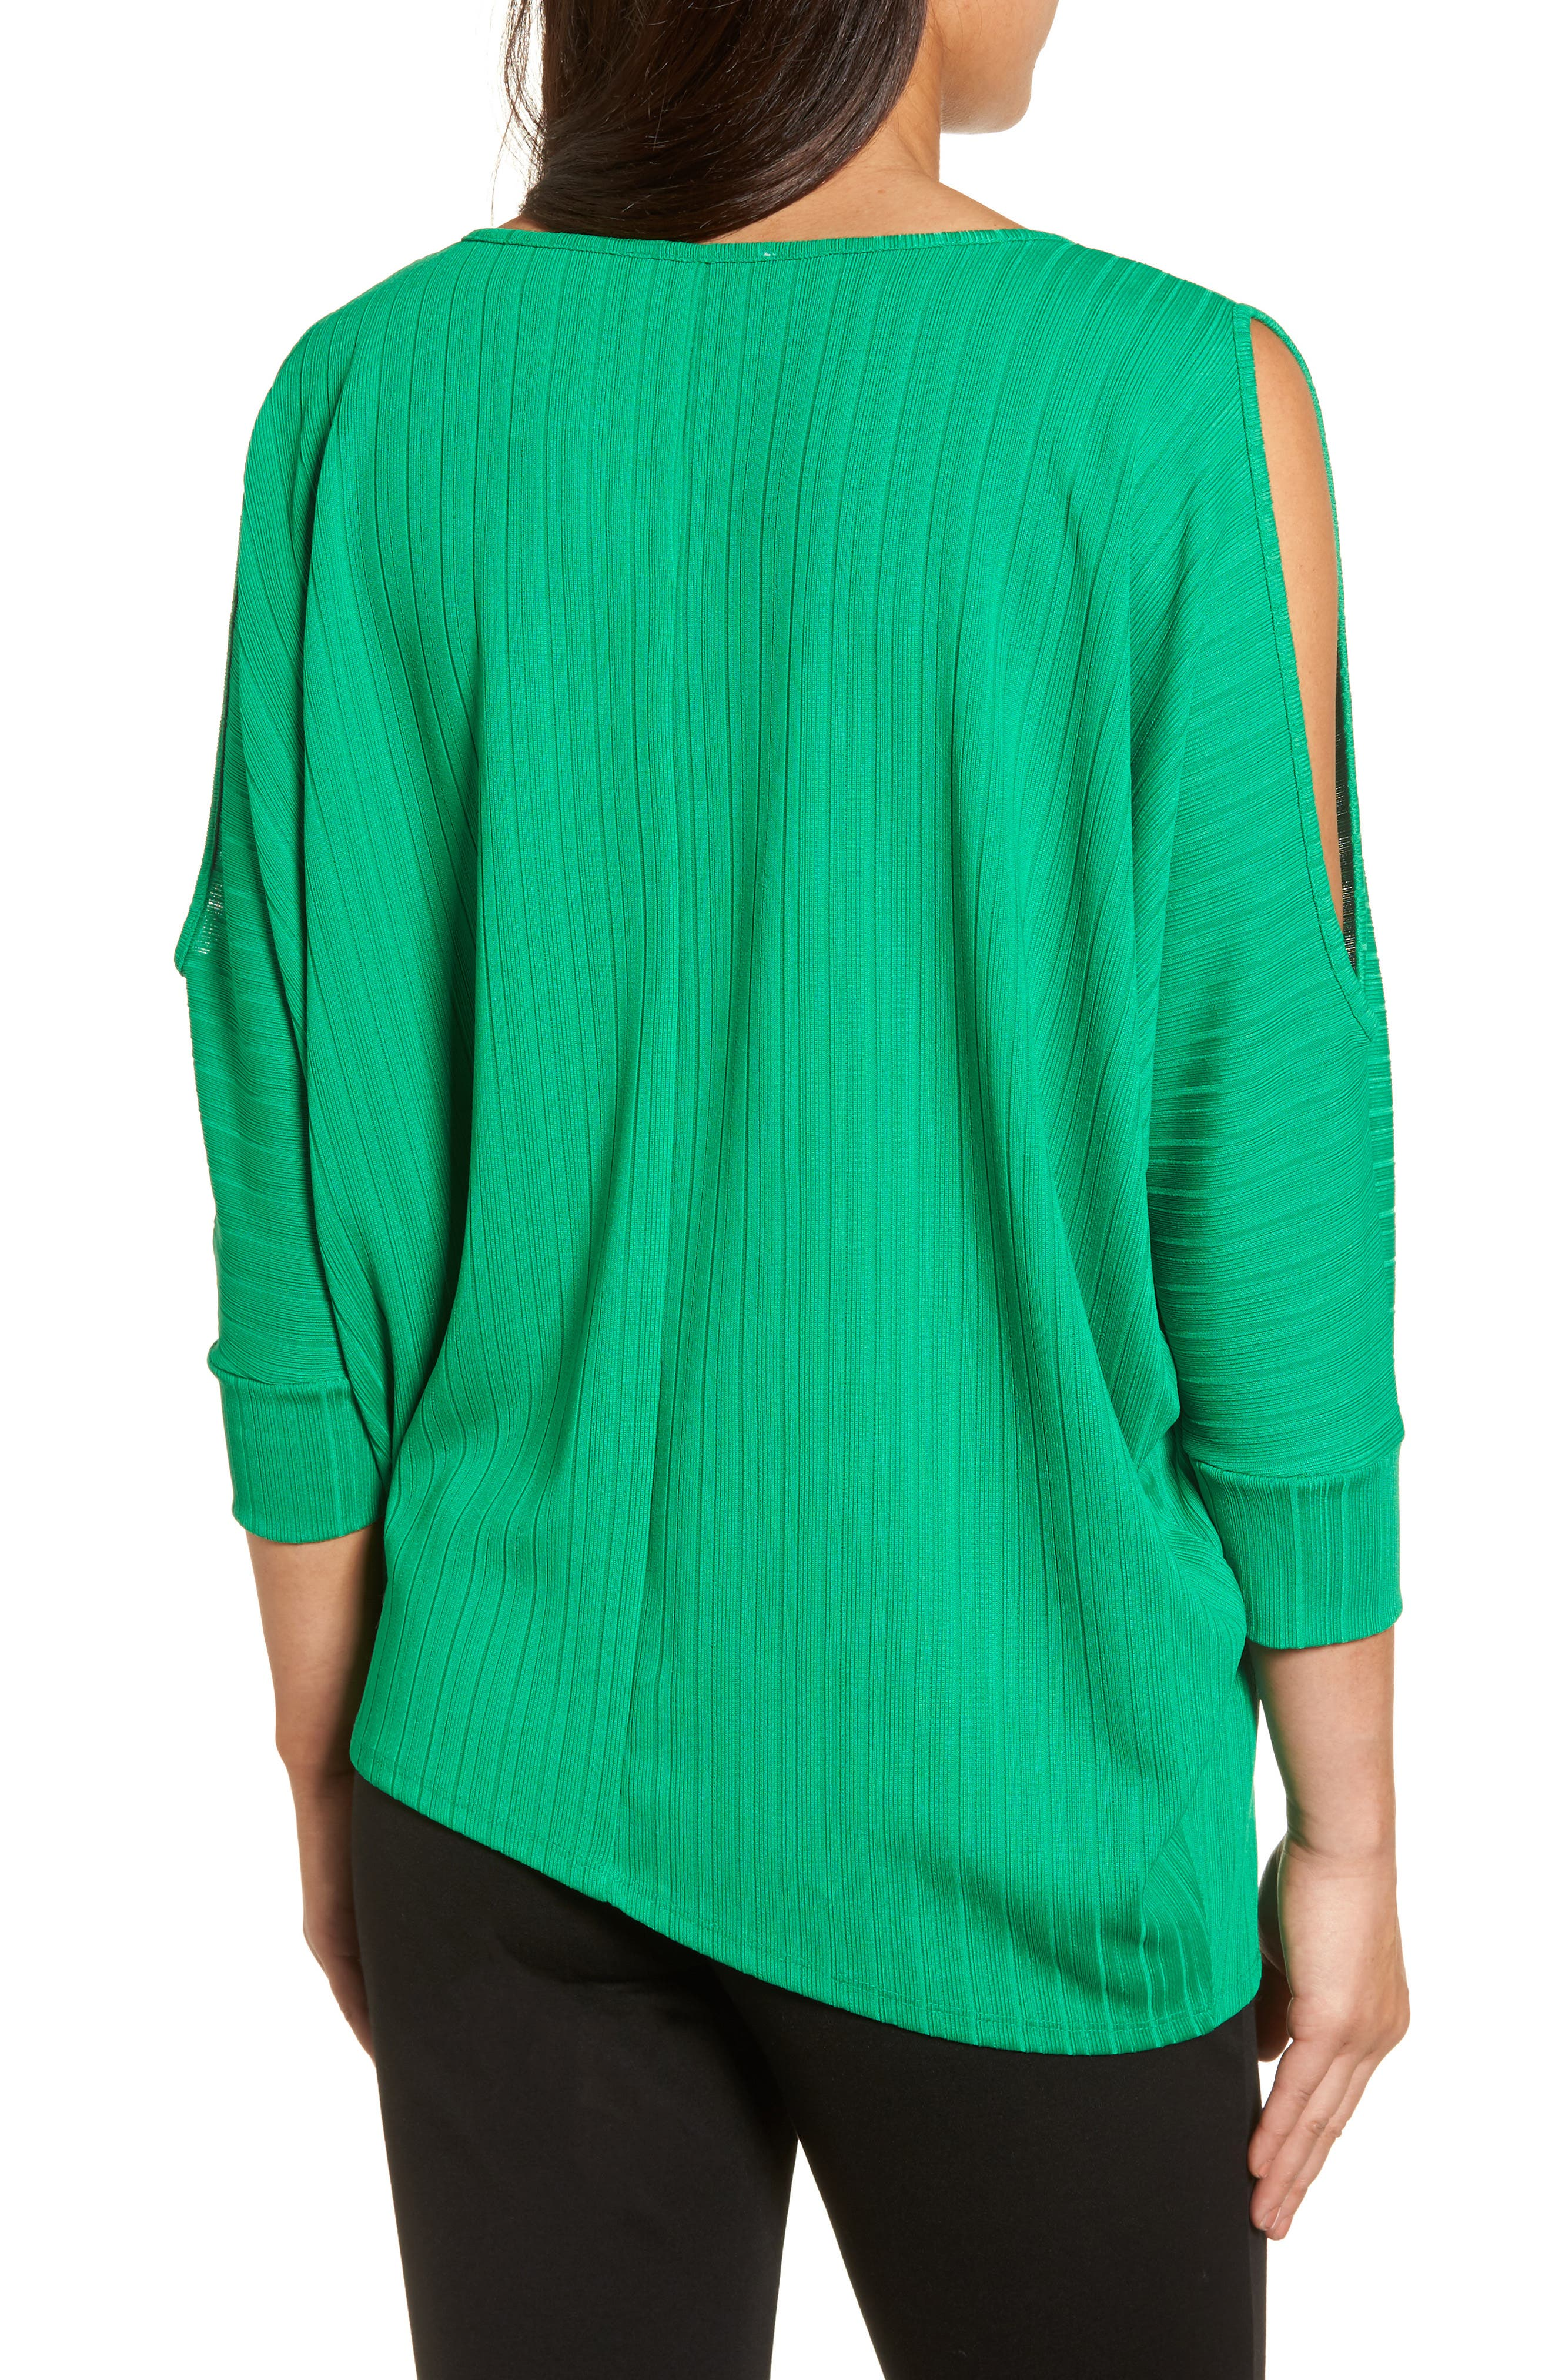 Ribbed Knit Cold Shoulder Top,                             Alternate thumbnail 2, color,                             Bright Amazon